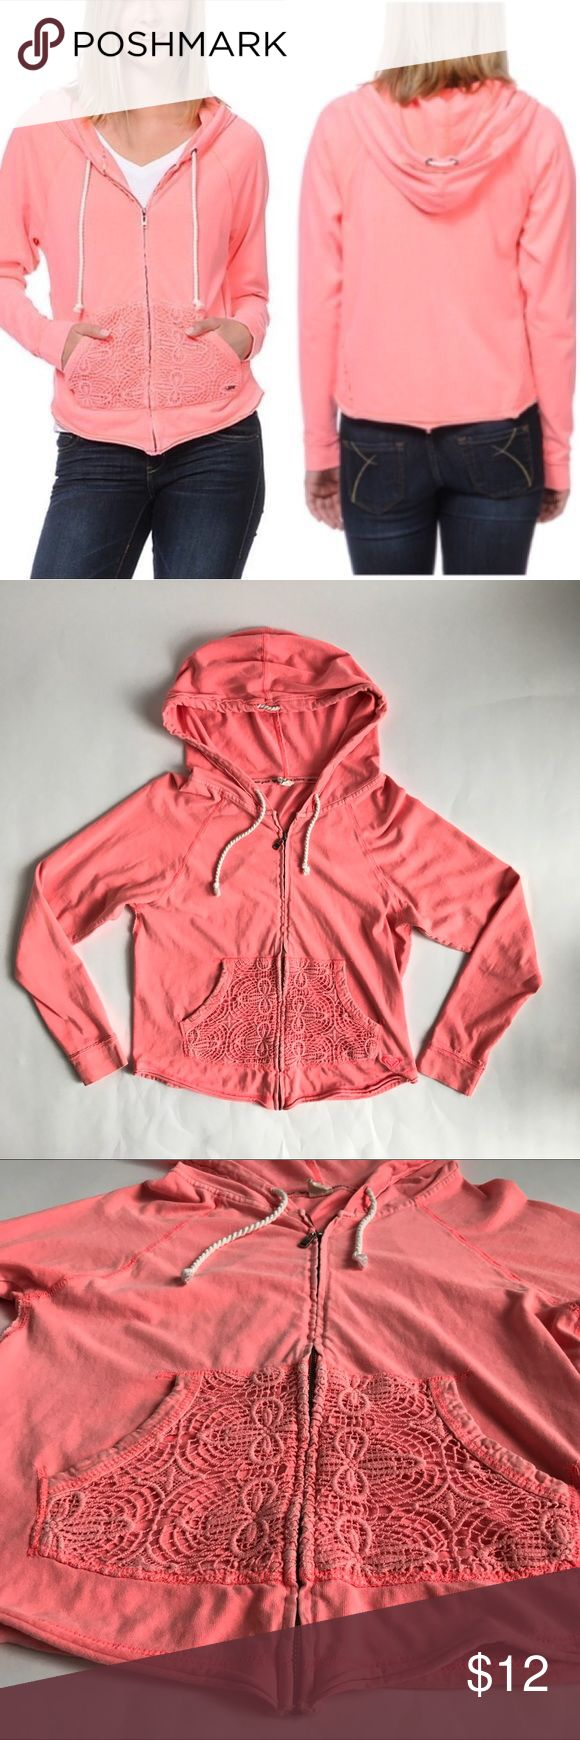 Roxy Crochet Zip Up Hoodie Neon Coral This hoodie has such lovely detail. The color is beautiful. The rope ties and crochet pockets add intriguing detail. It is a size small. Roxy Tops Sweatshirts & Hoodies